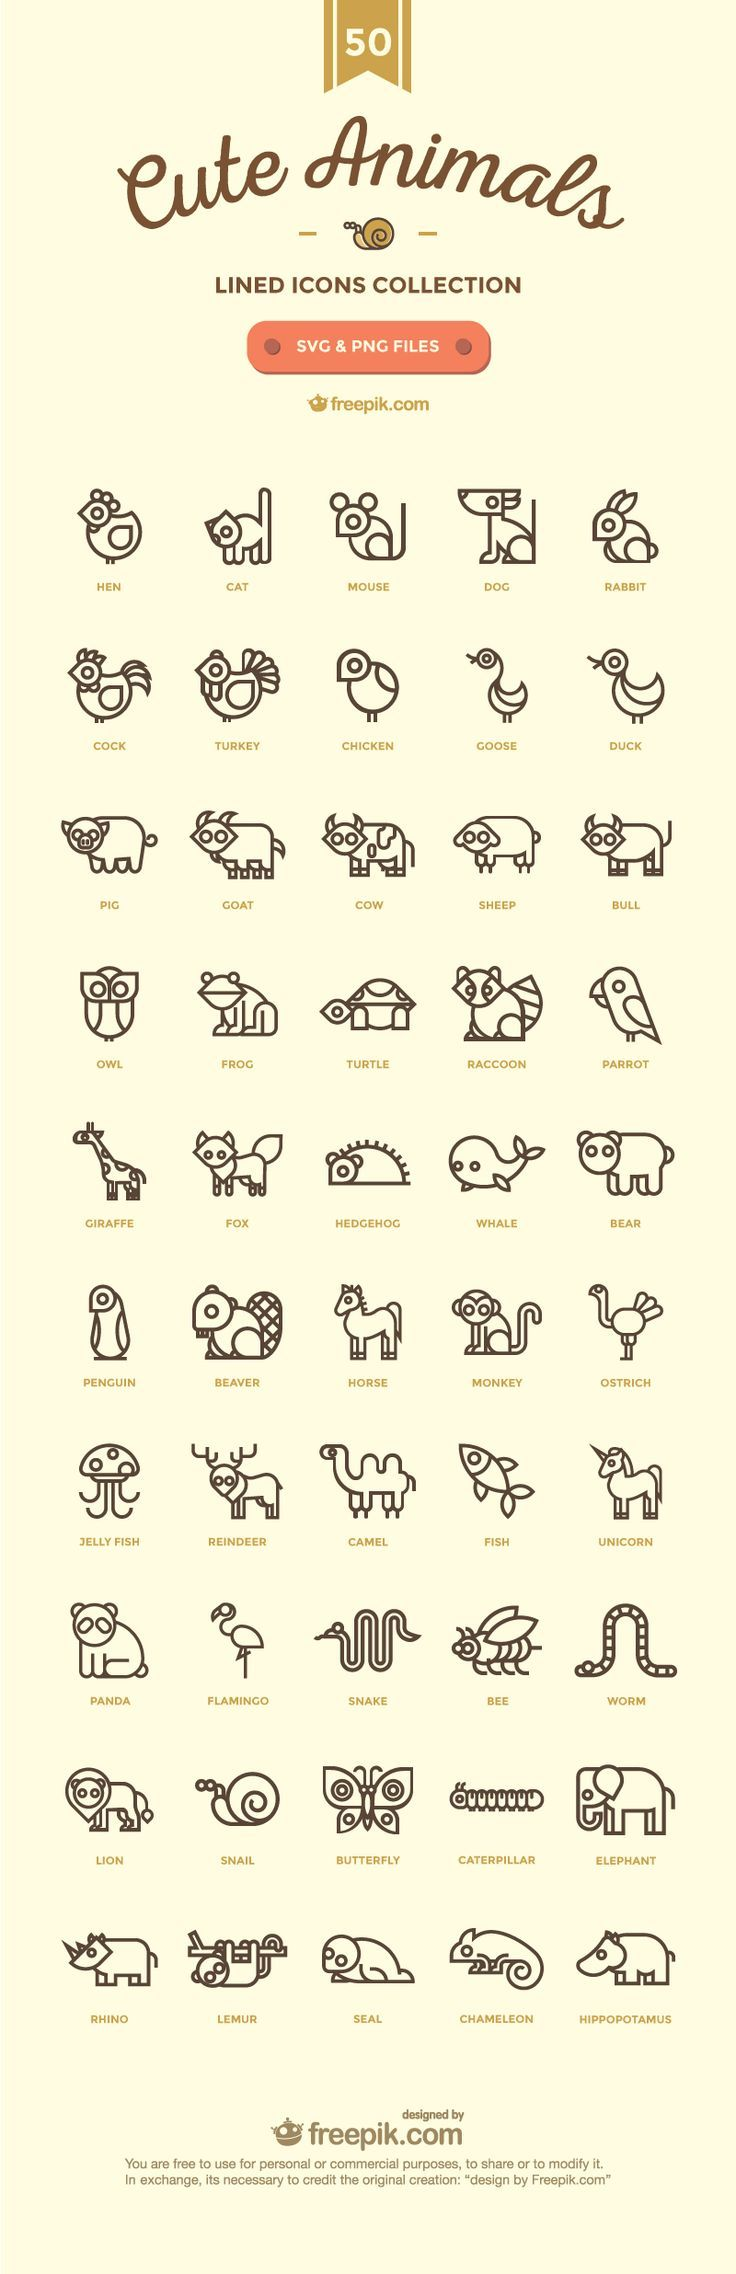 50-Cute Animals-02. Easy conversion to 8 bit cross stitch.: